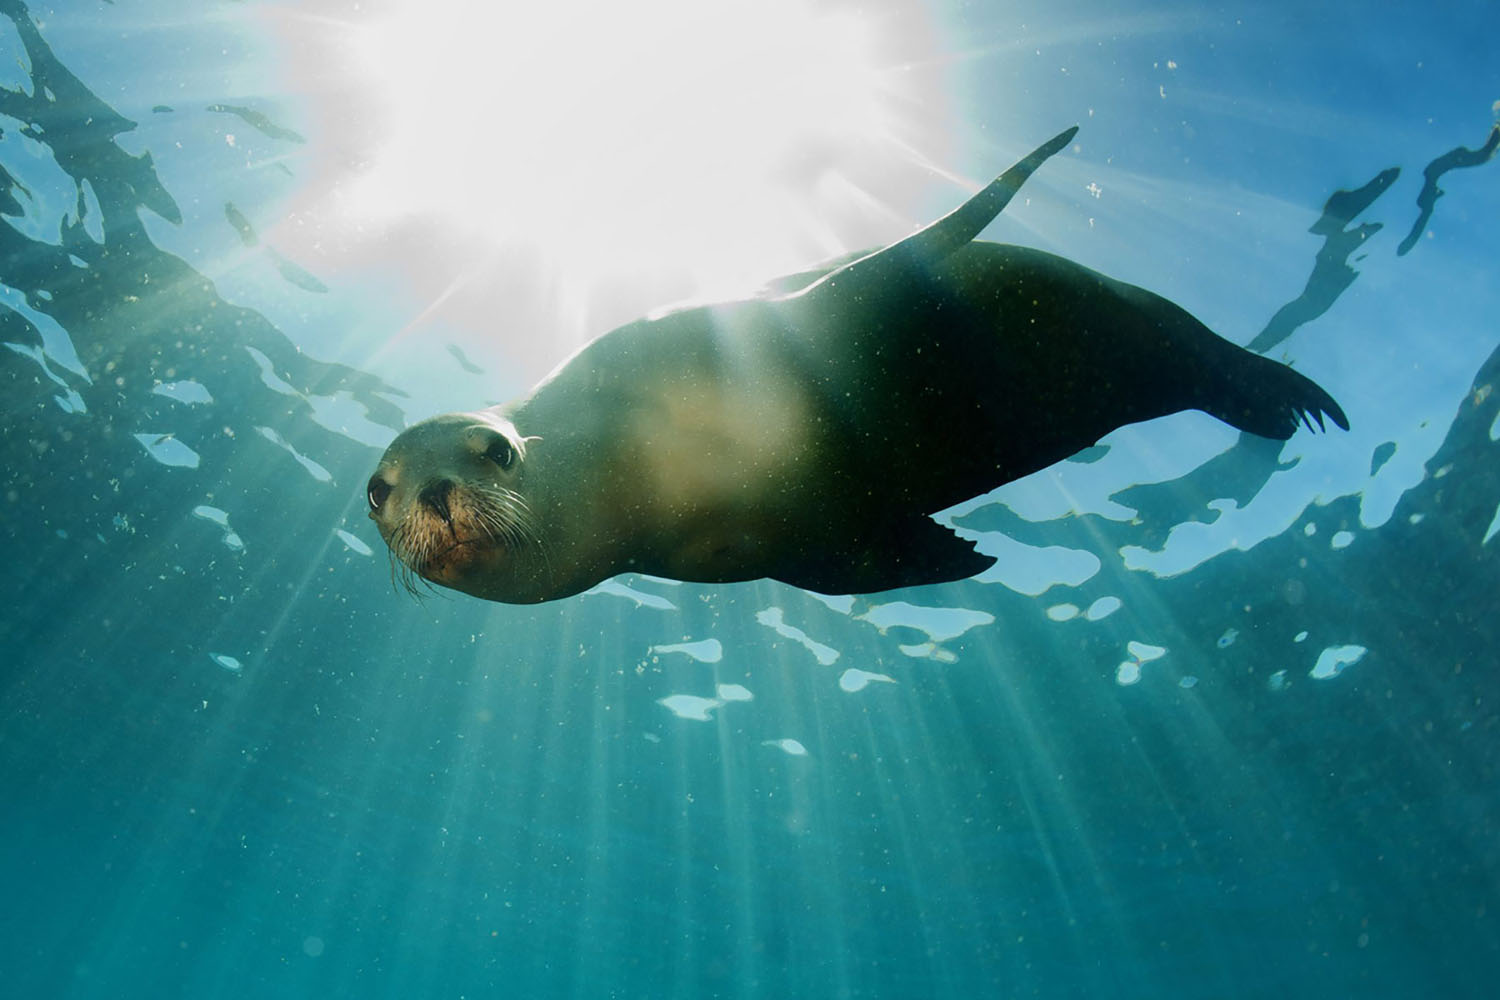 A sea lion swimming underwater